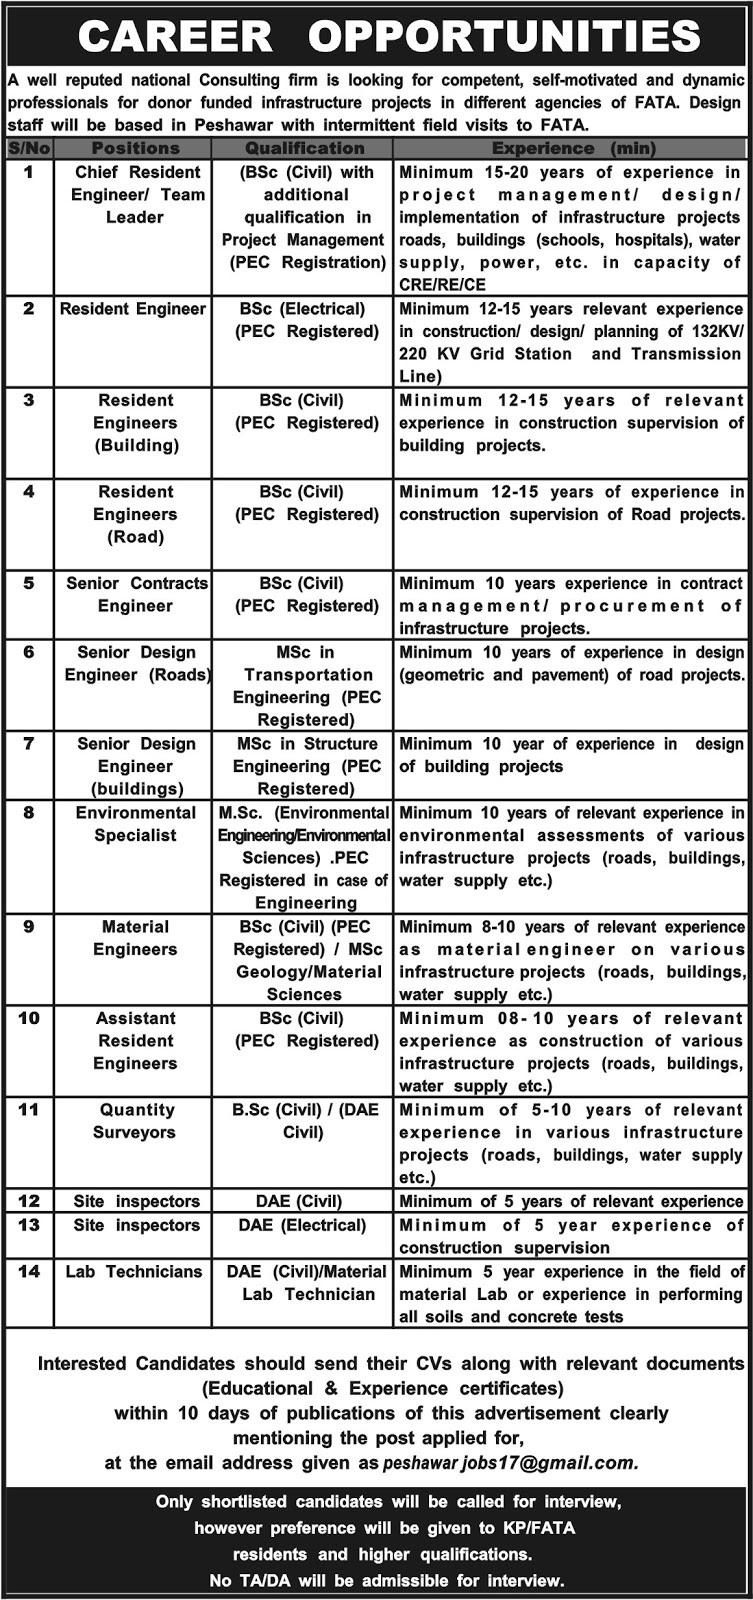 Jobs In Well Reputed National Consulting Firm Peshawar Dec 2017